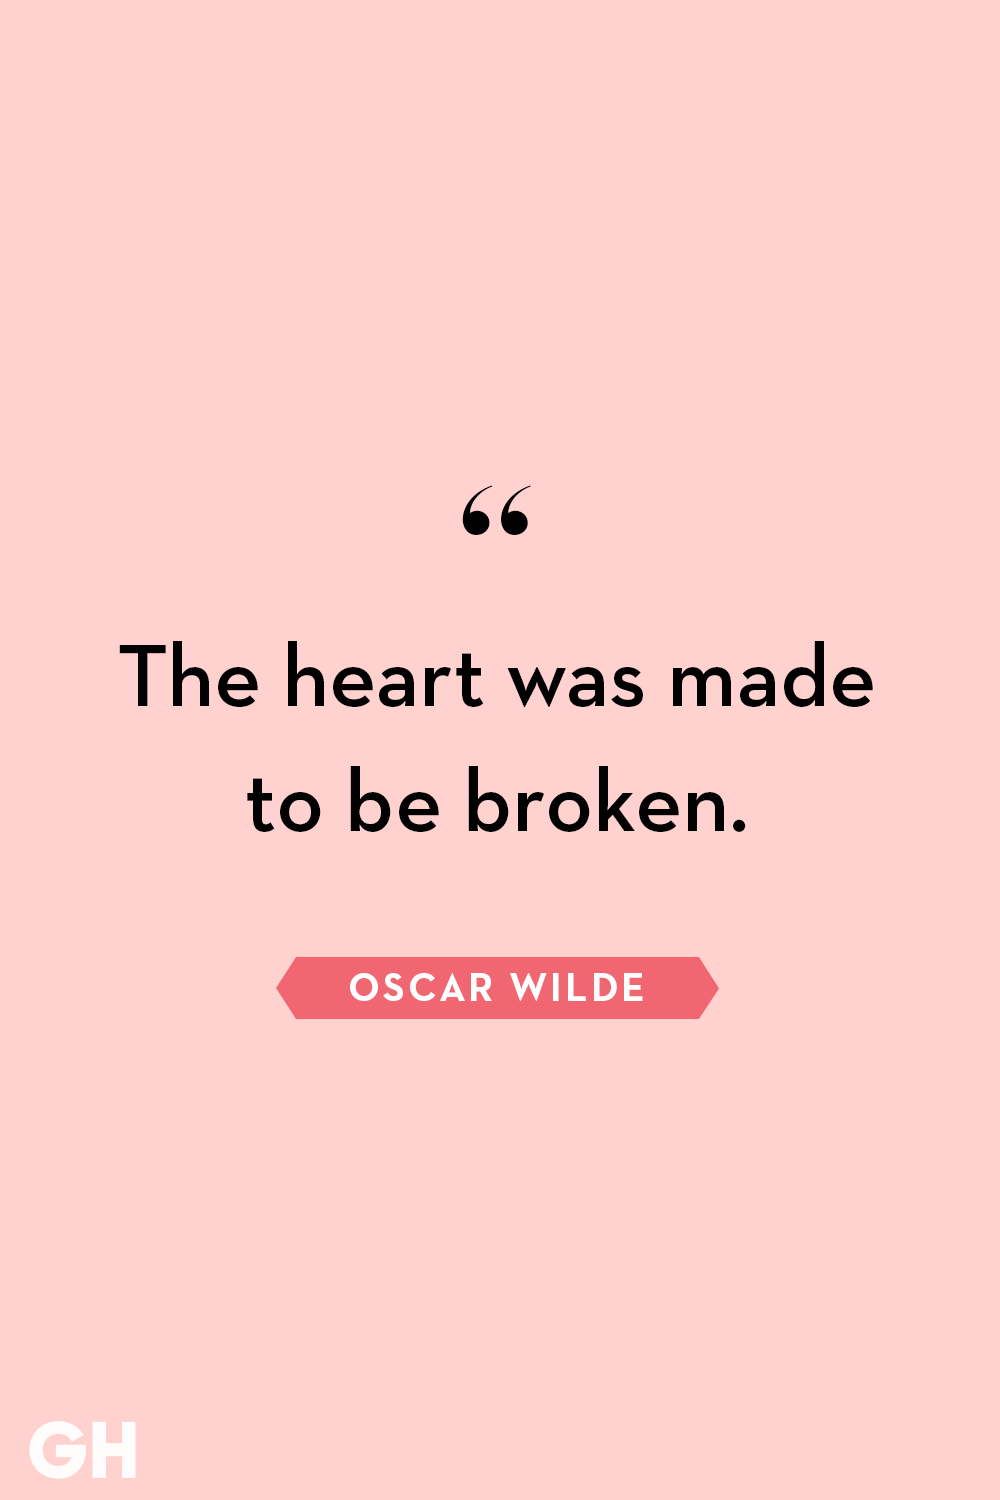 Marilyn Monroe, Sylvia Plath and More Get Real About What It's Like to Have a Broken Heart